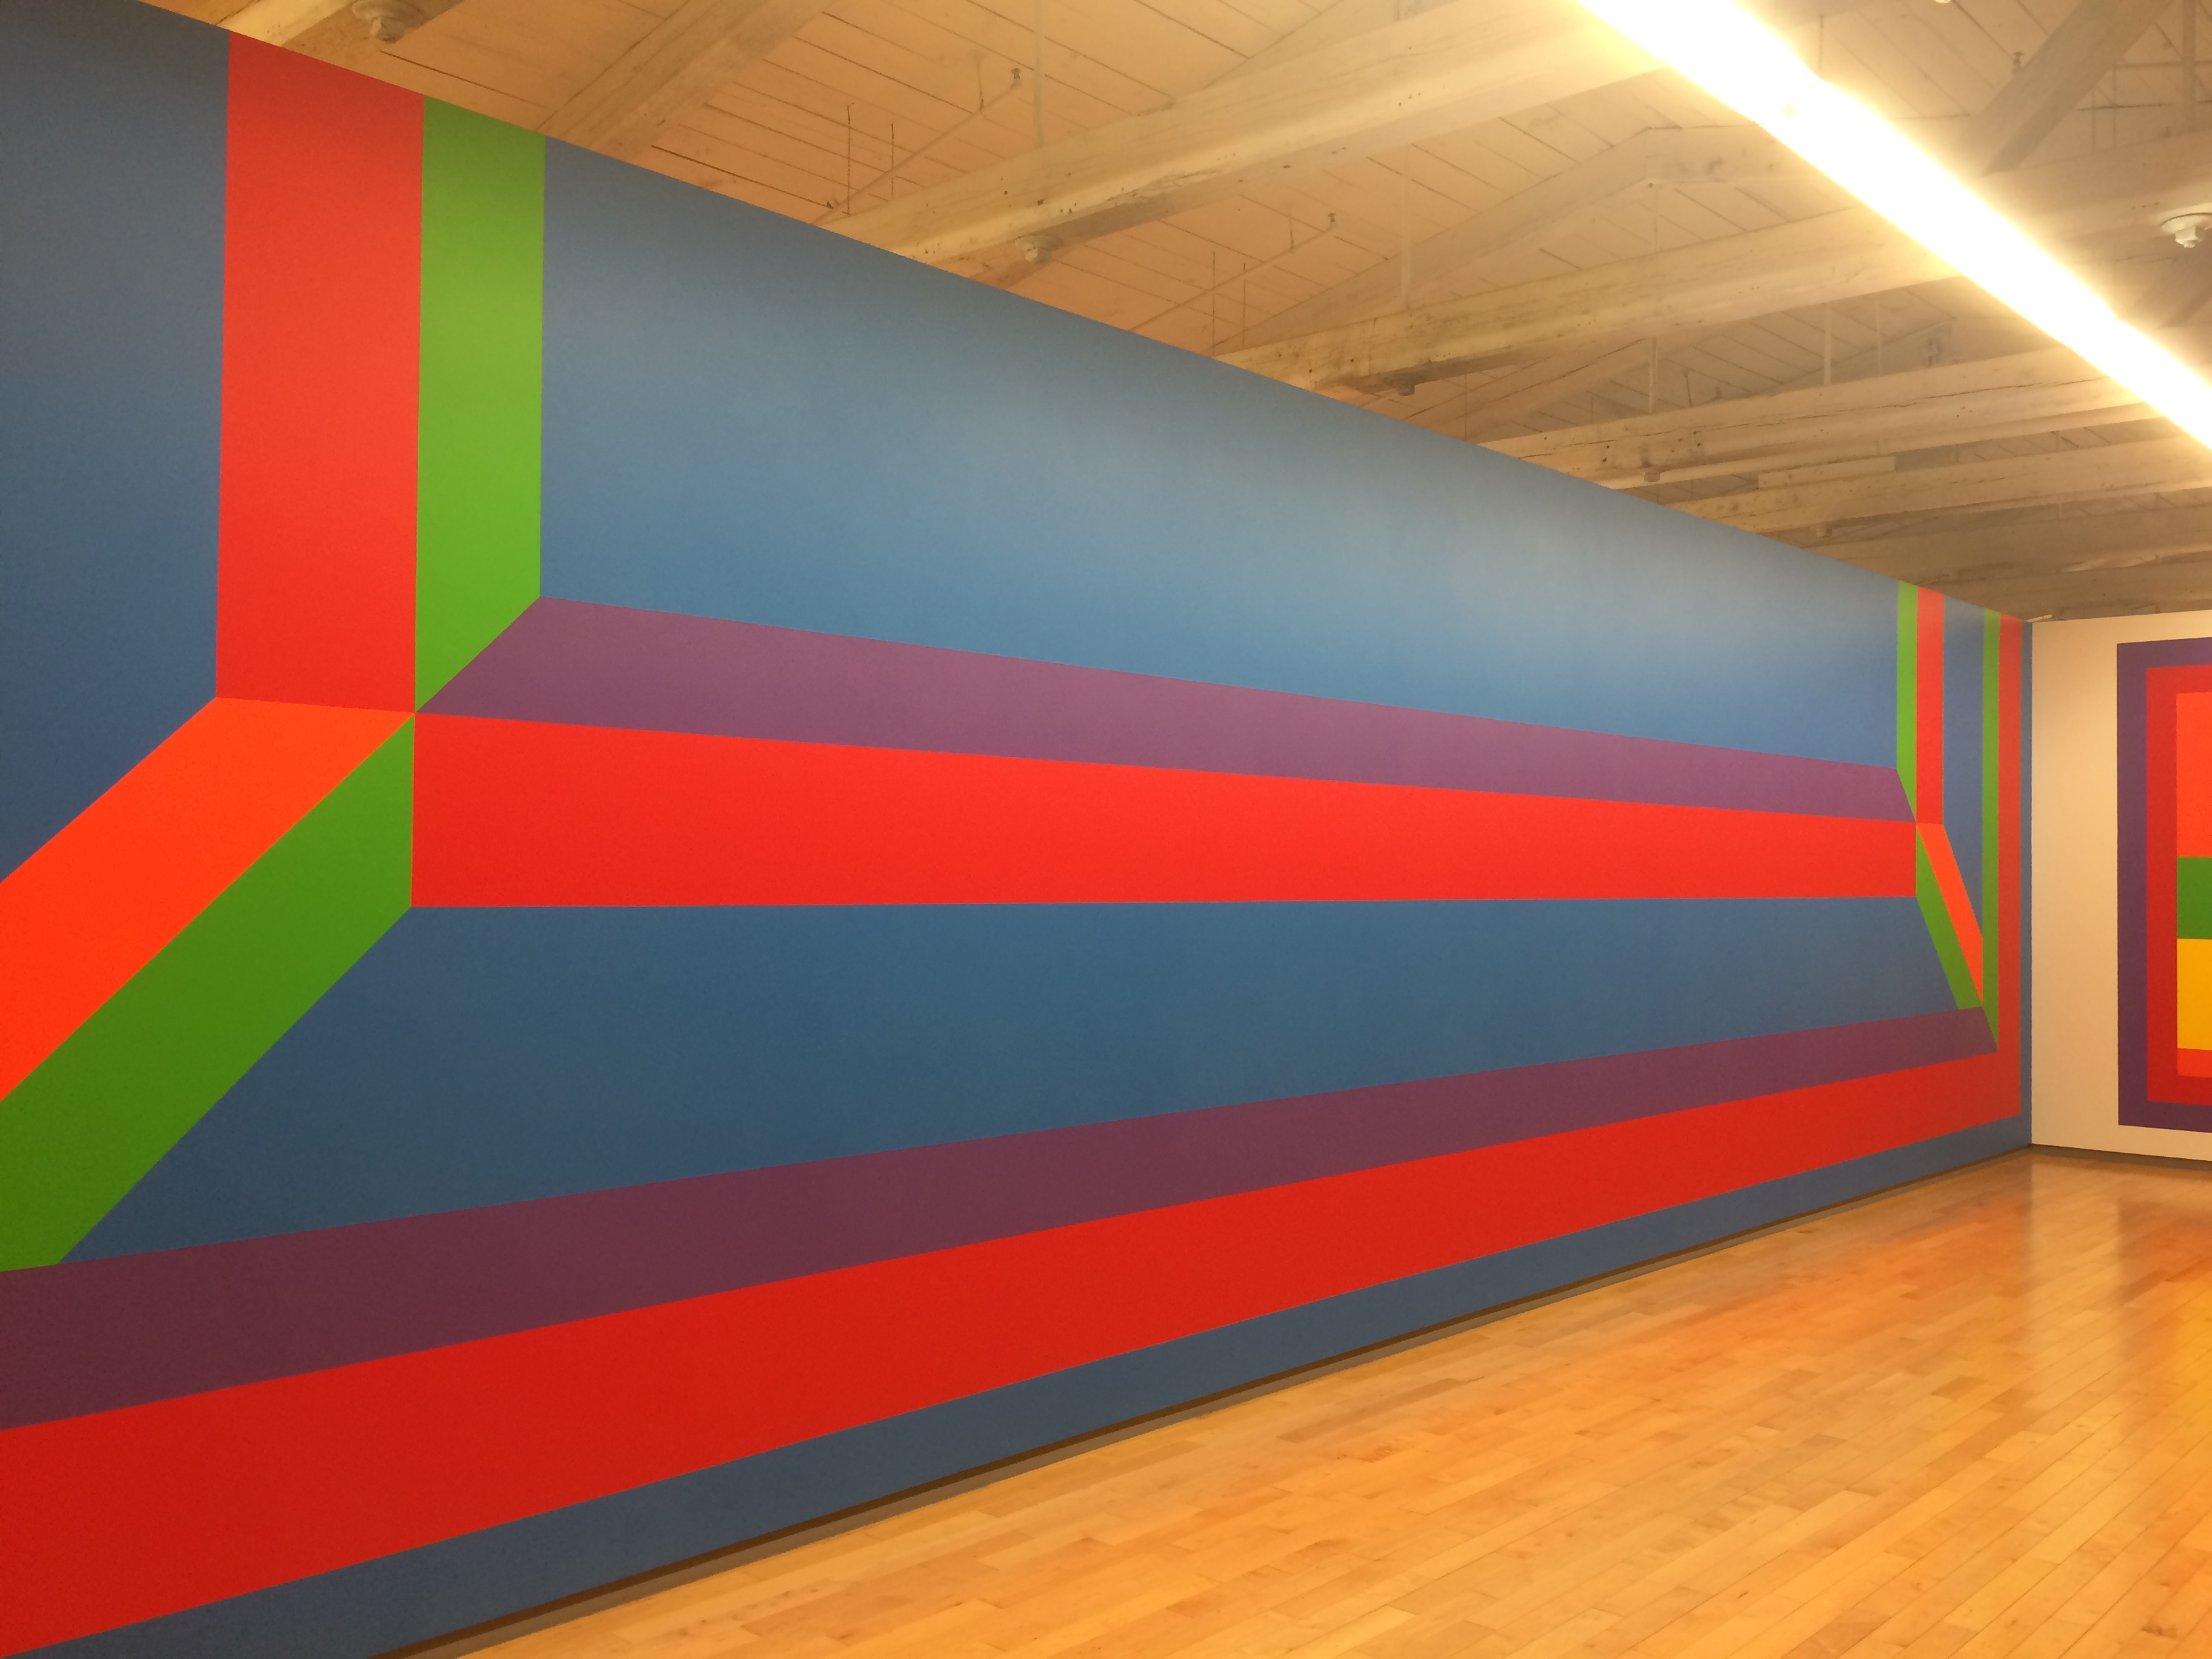 Sol Lewitt 39 S Influential Drawings On Walls Around The World